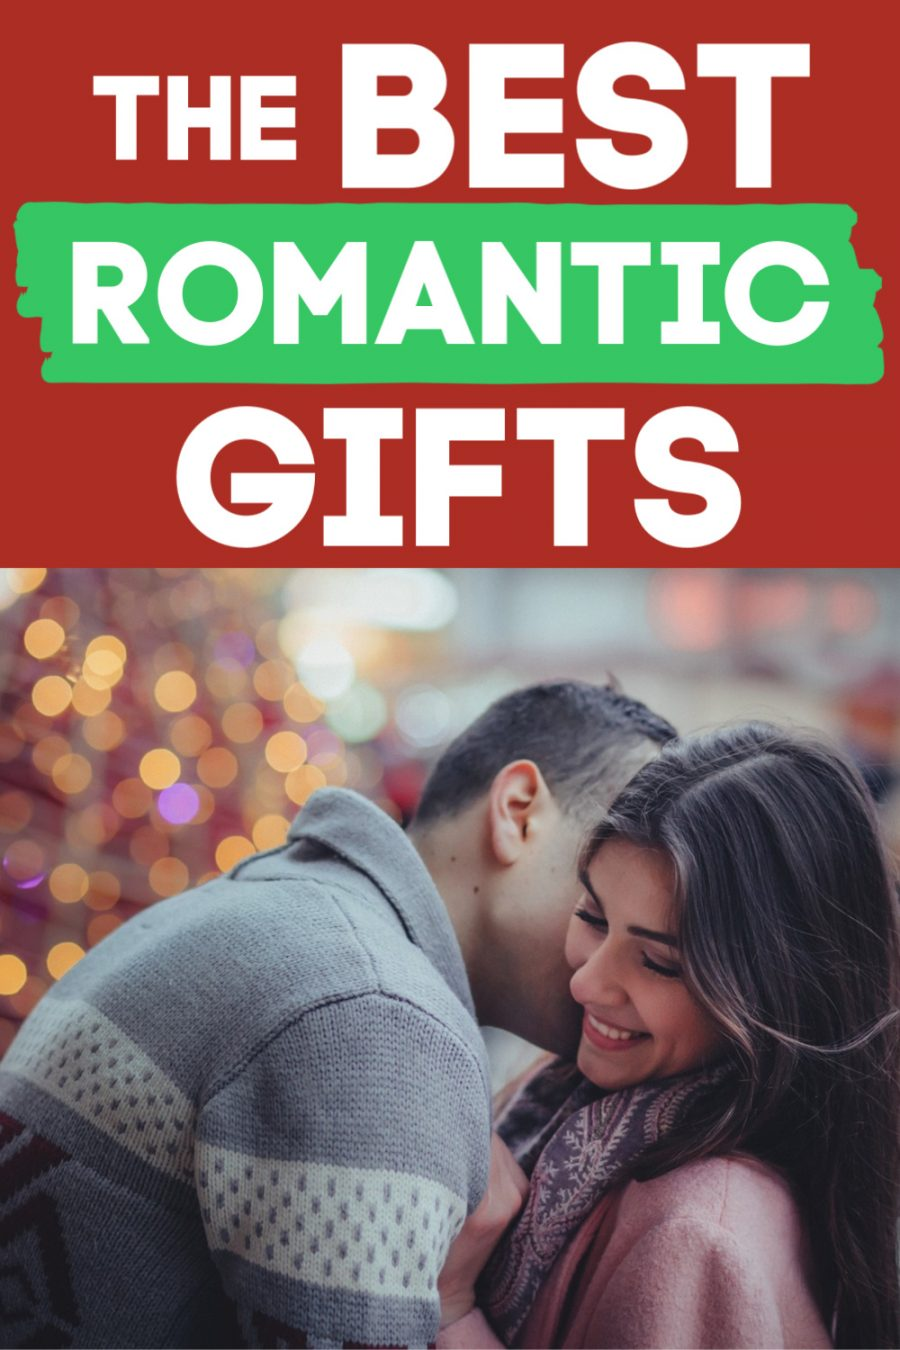 The BEST Romantic Gifts